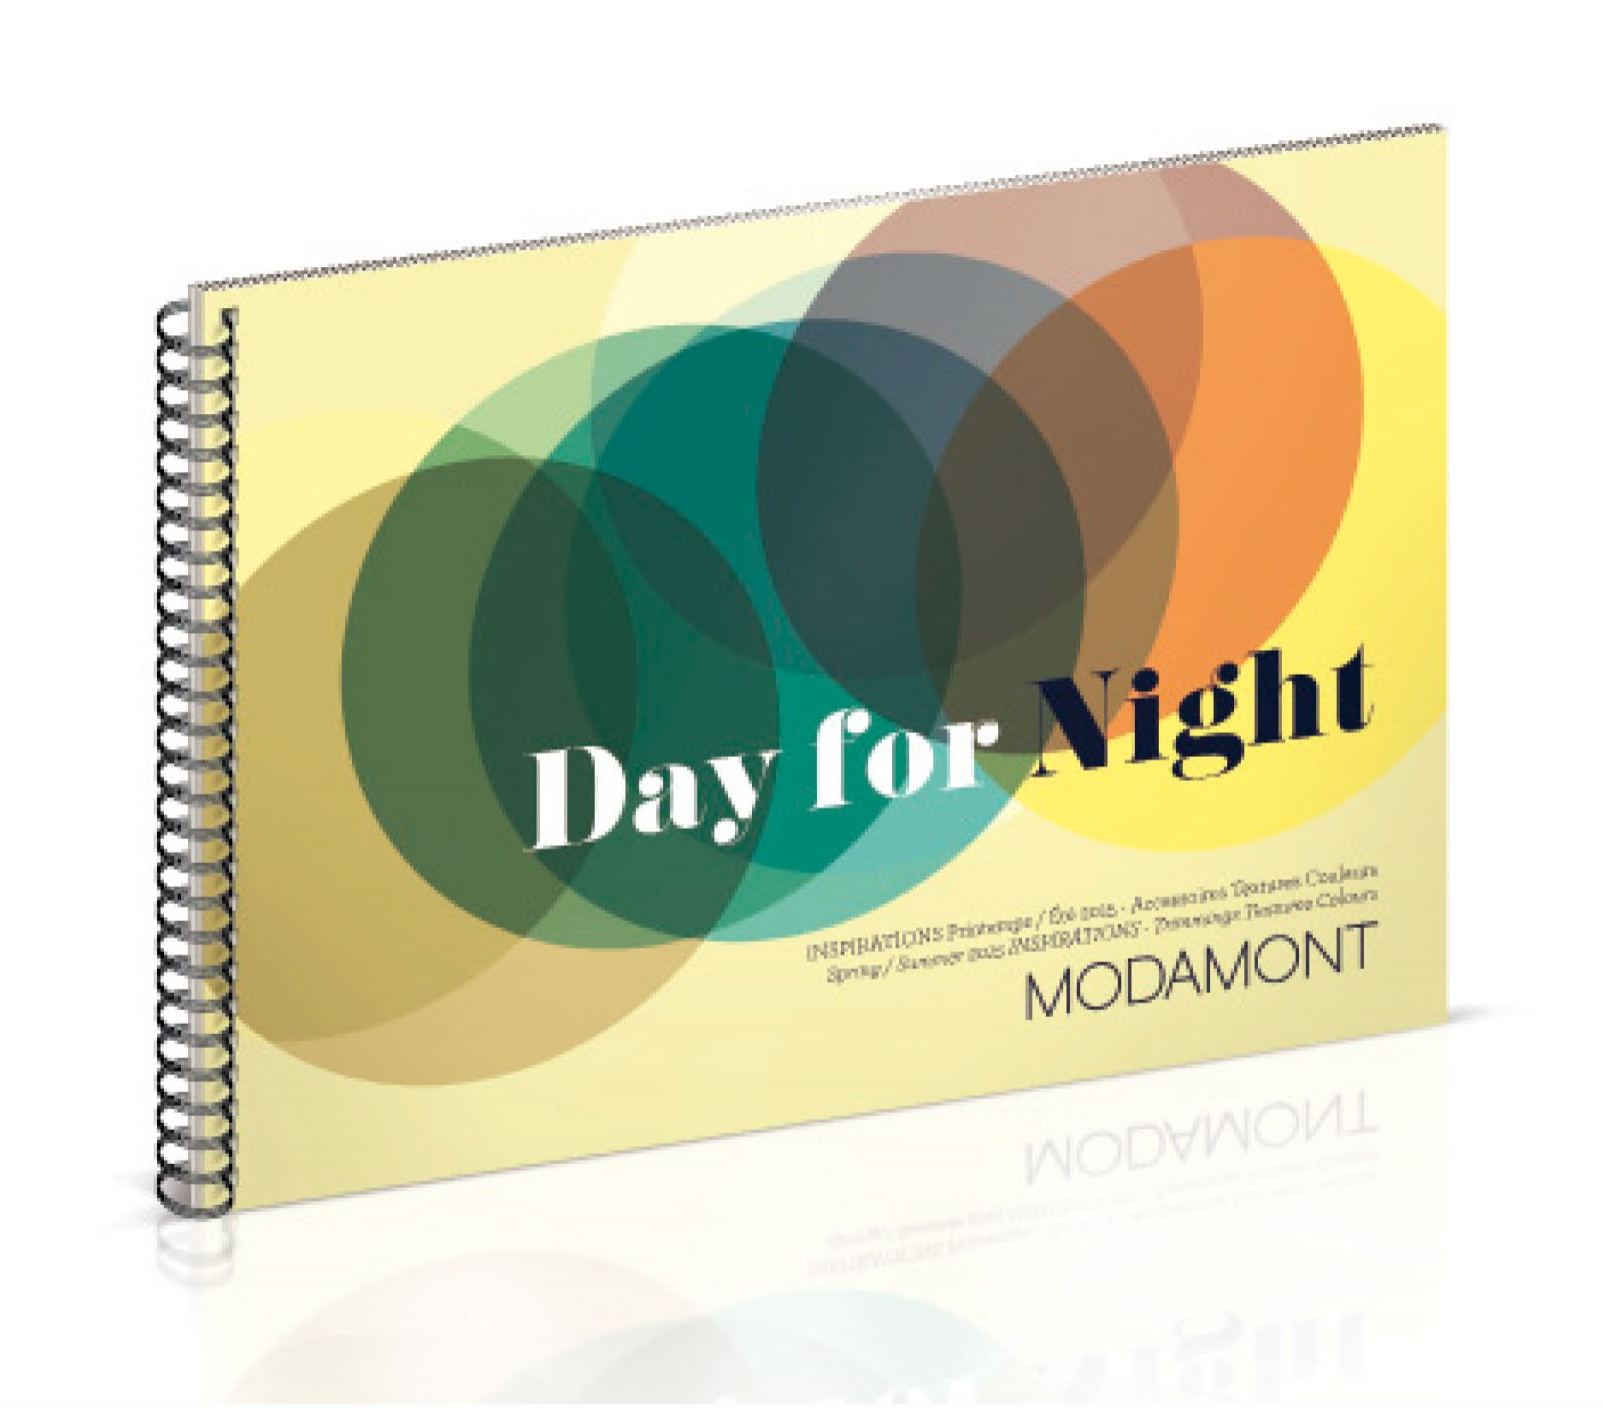 DAY FOR NIGHT -  DA & réalisation - Surface pattern design - Édition - Trend book - Modamont